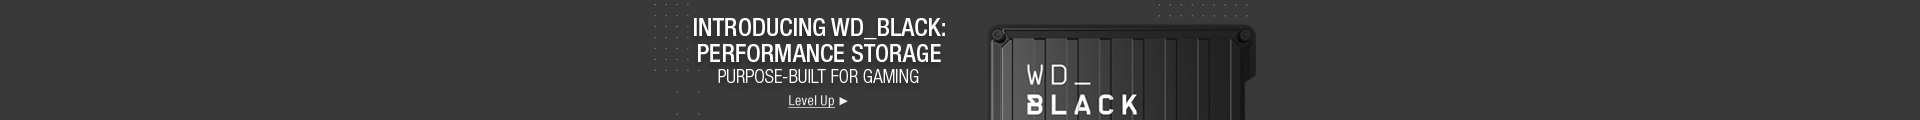 Introducing WD_BLACK: performance storage